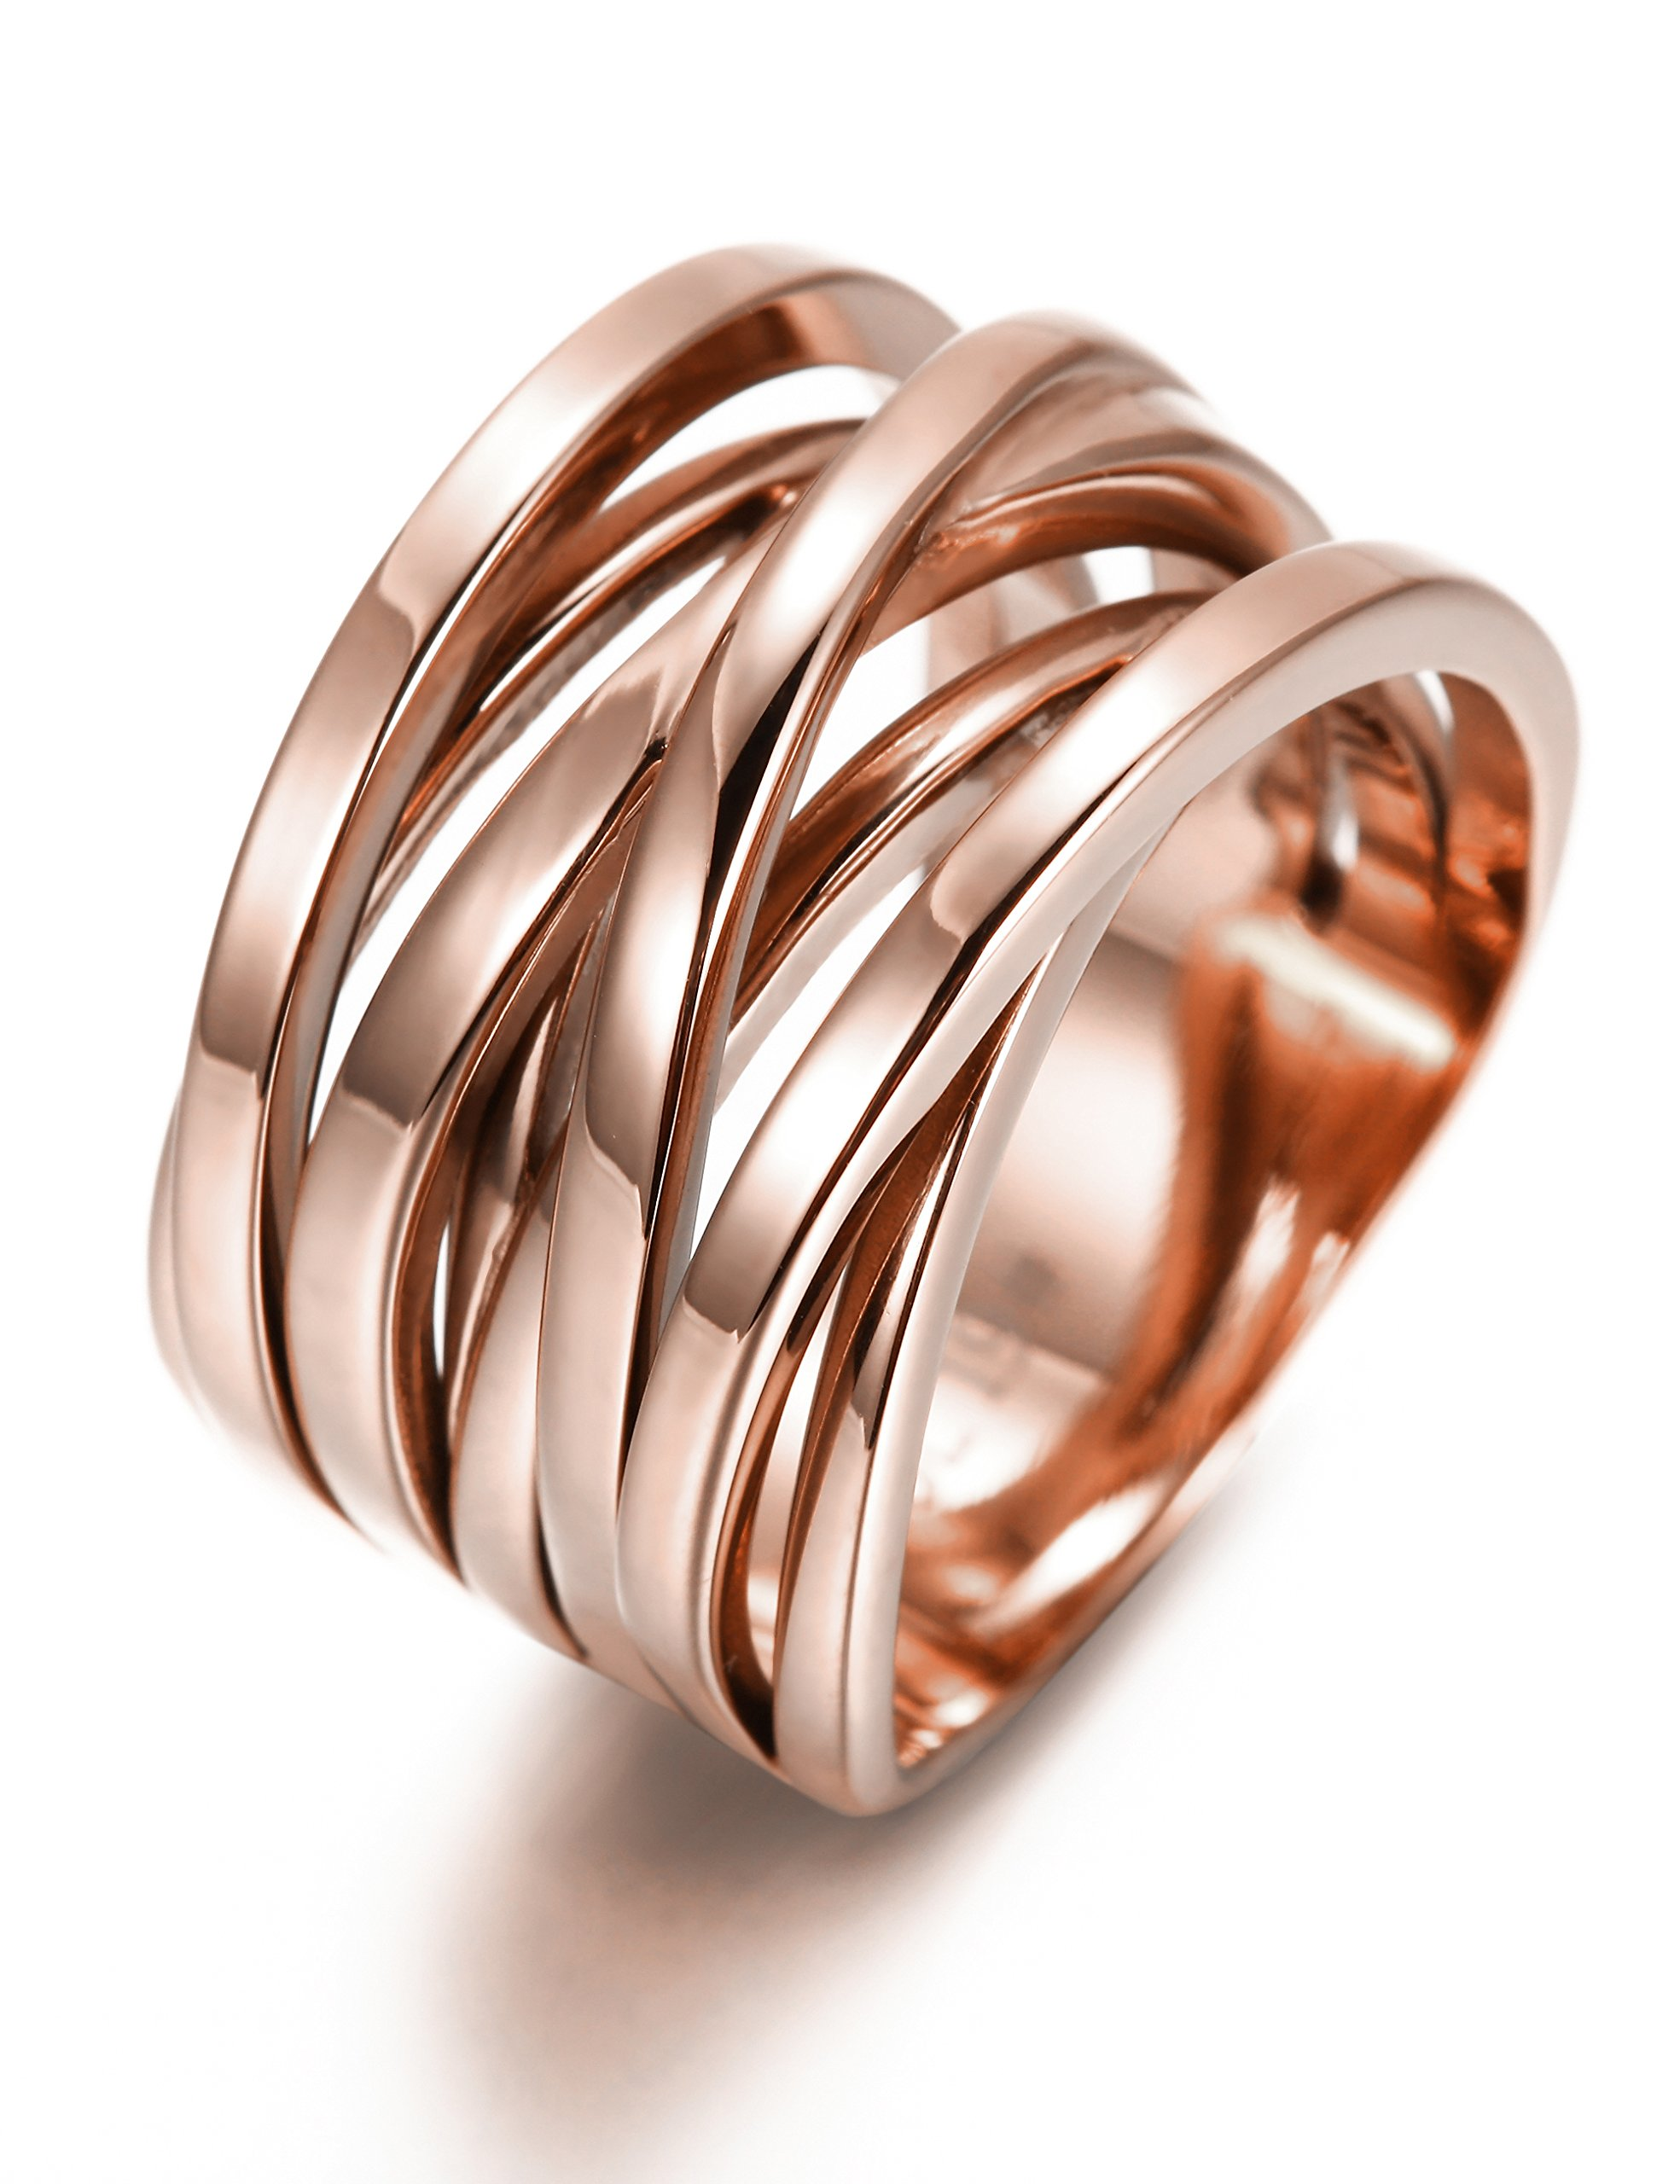 CIUNOFOR 13.7MM Stainless Steel Cross Ring Women Girls Statement Cocktail Ring Jewelry Rose Gold/Gold Plated